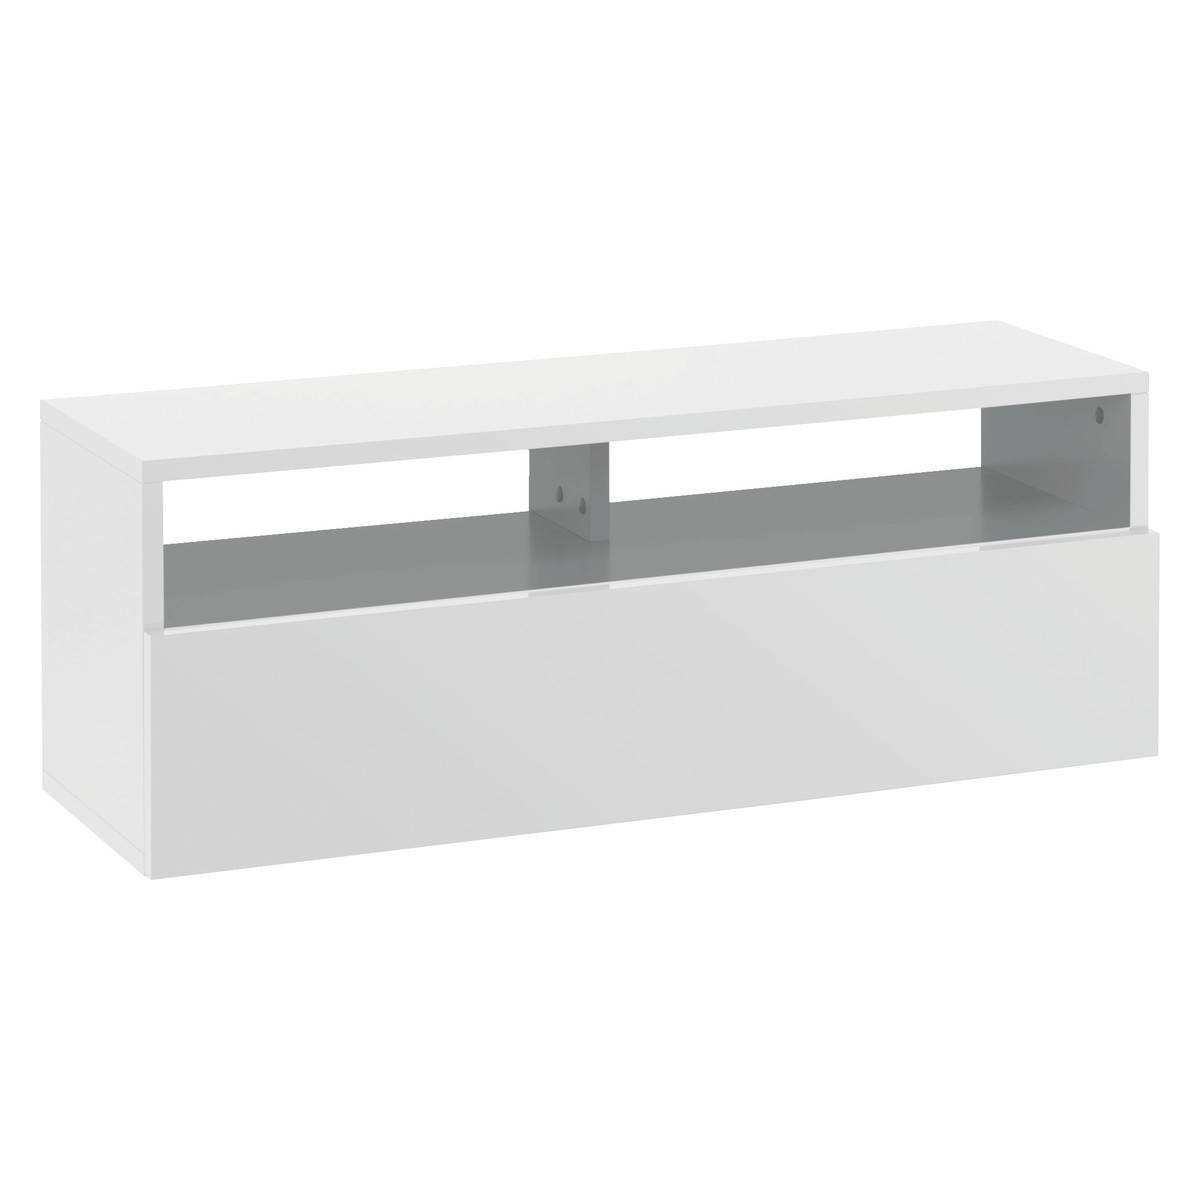 Tv Units - Our Pick Of The Best | Ideal Home with Corner Tv Unit White Gloss (Image 11 of 15)